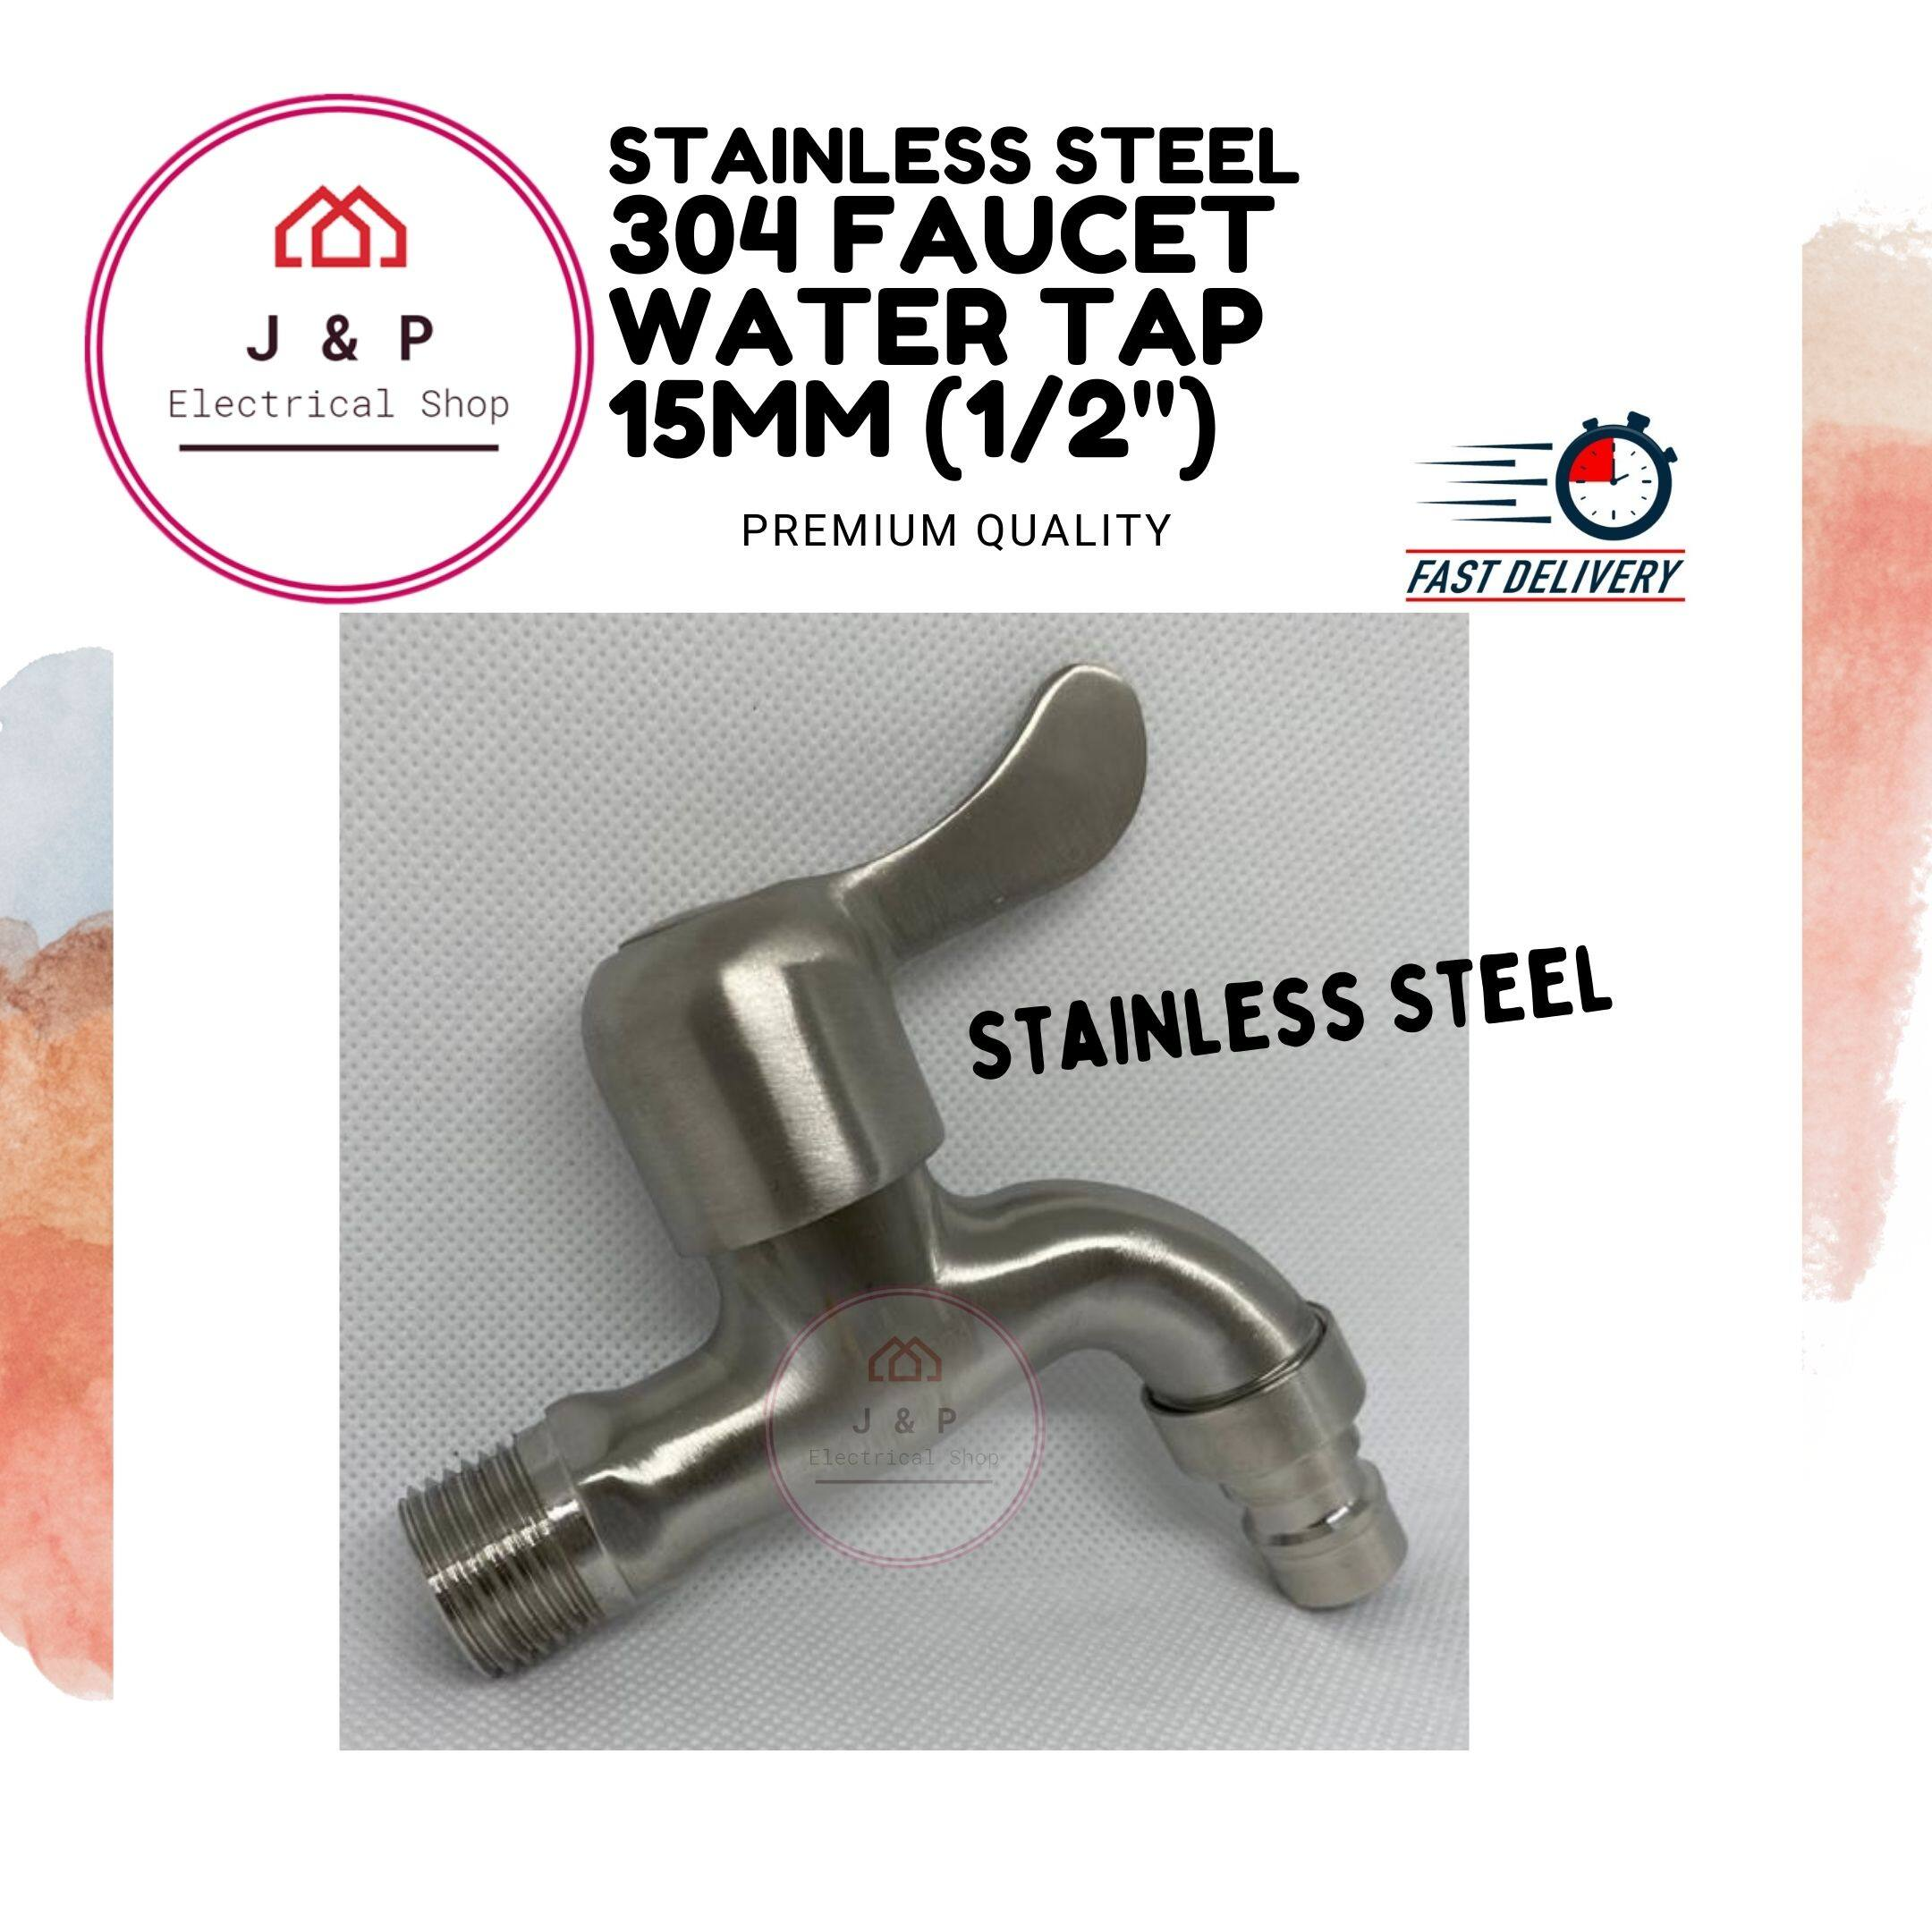 "304 Faucet Water Tap 15mm (1/2"") Stainless Steel - Premium Quality ( HS-467AL)[READY STOCK]1542372550-1603022007460-0"